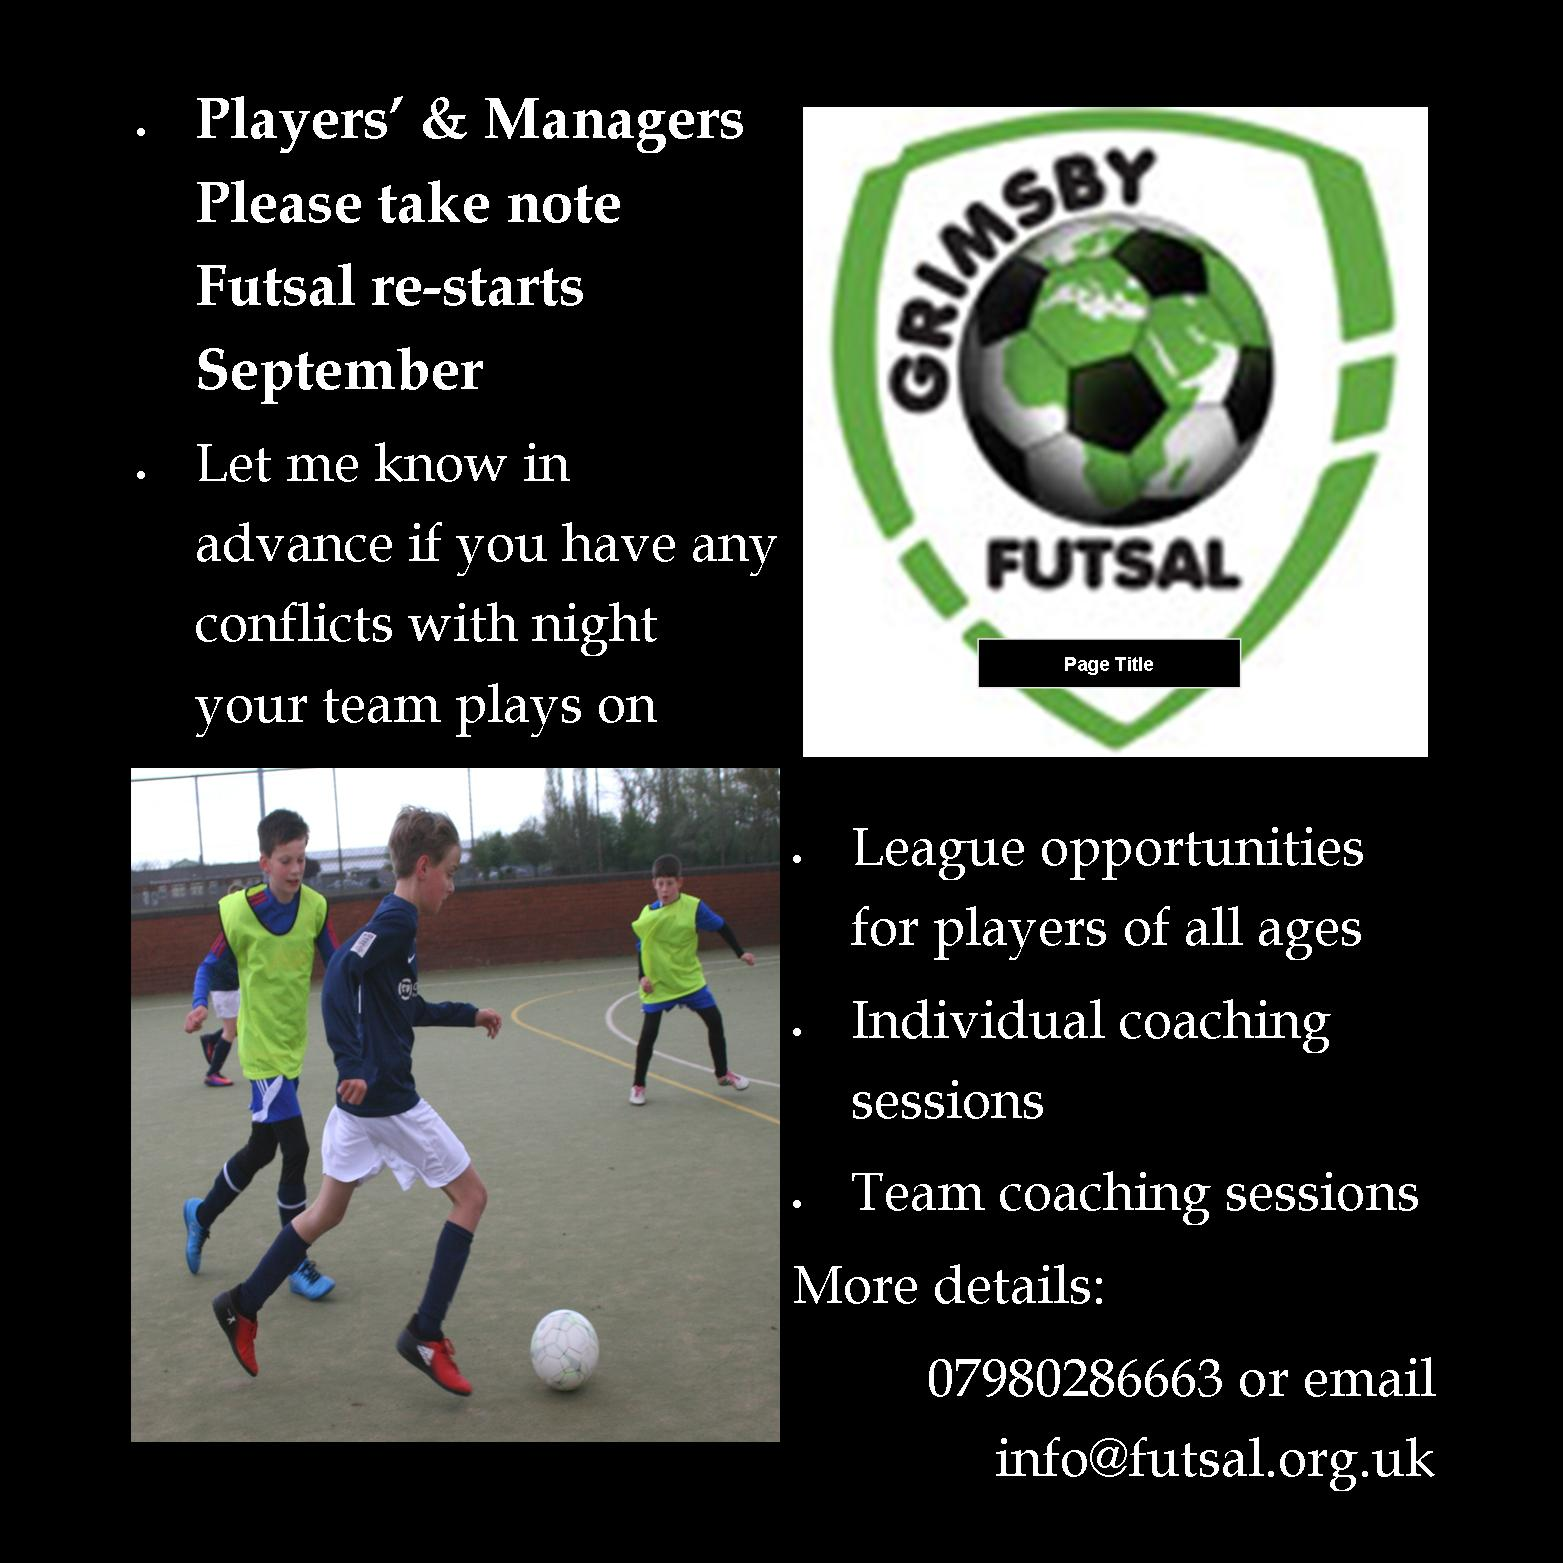 Darker nights closing in, prepare for Grimsby Futsal Leagues re-start